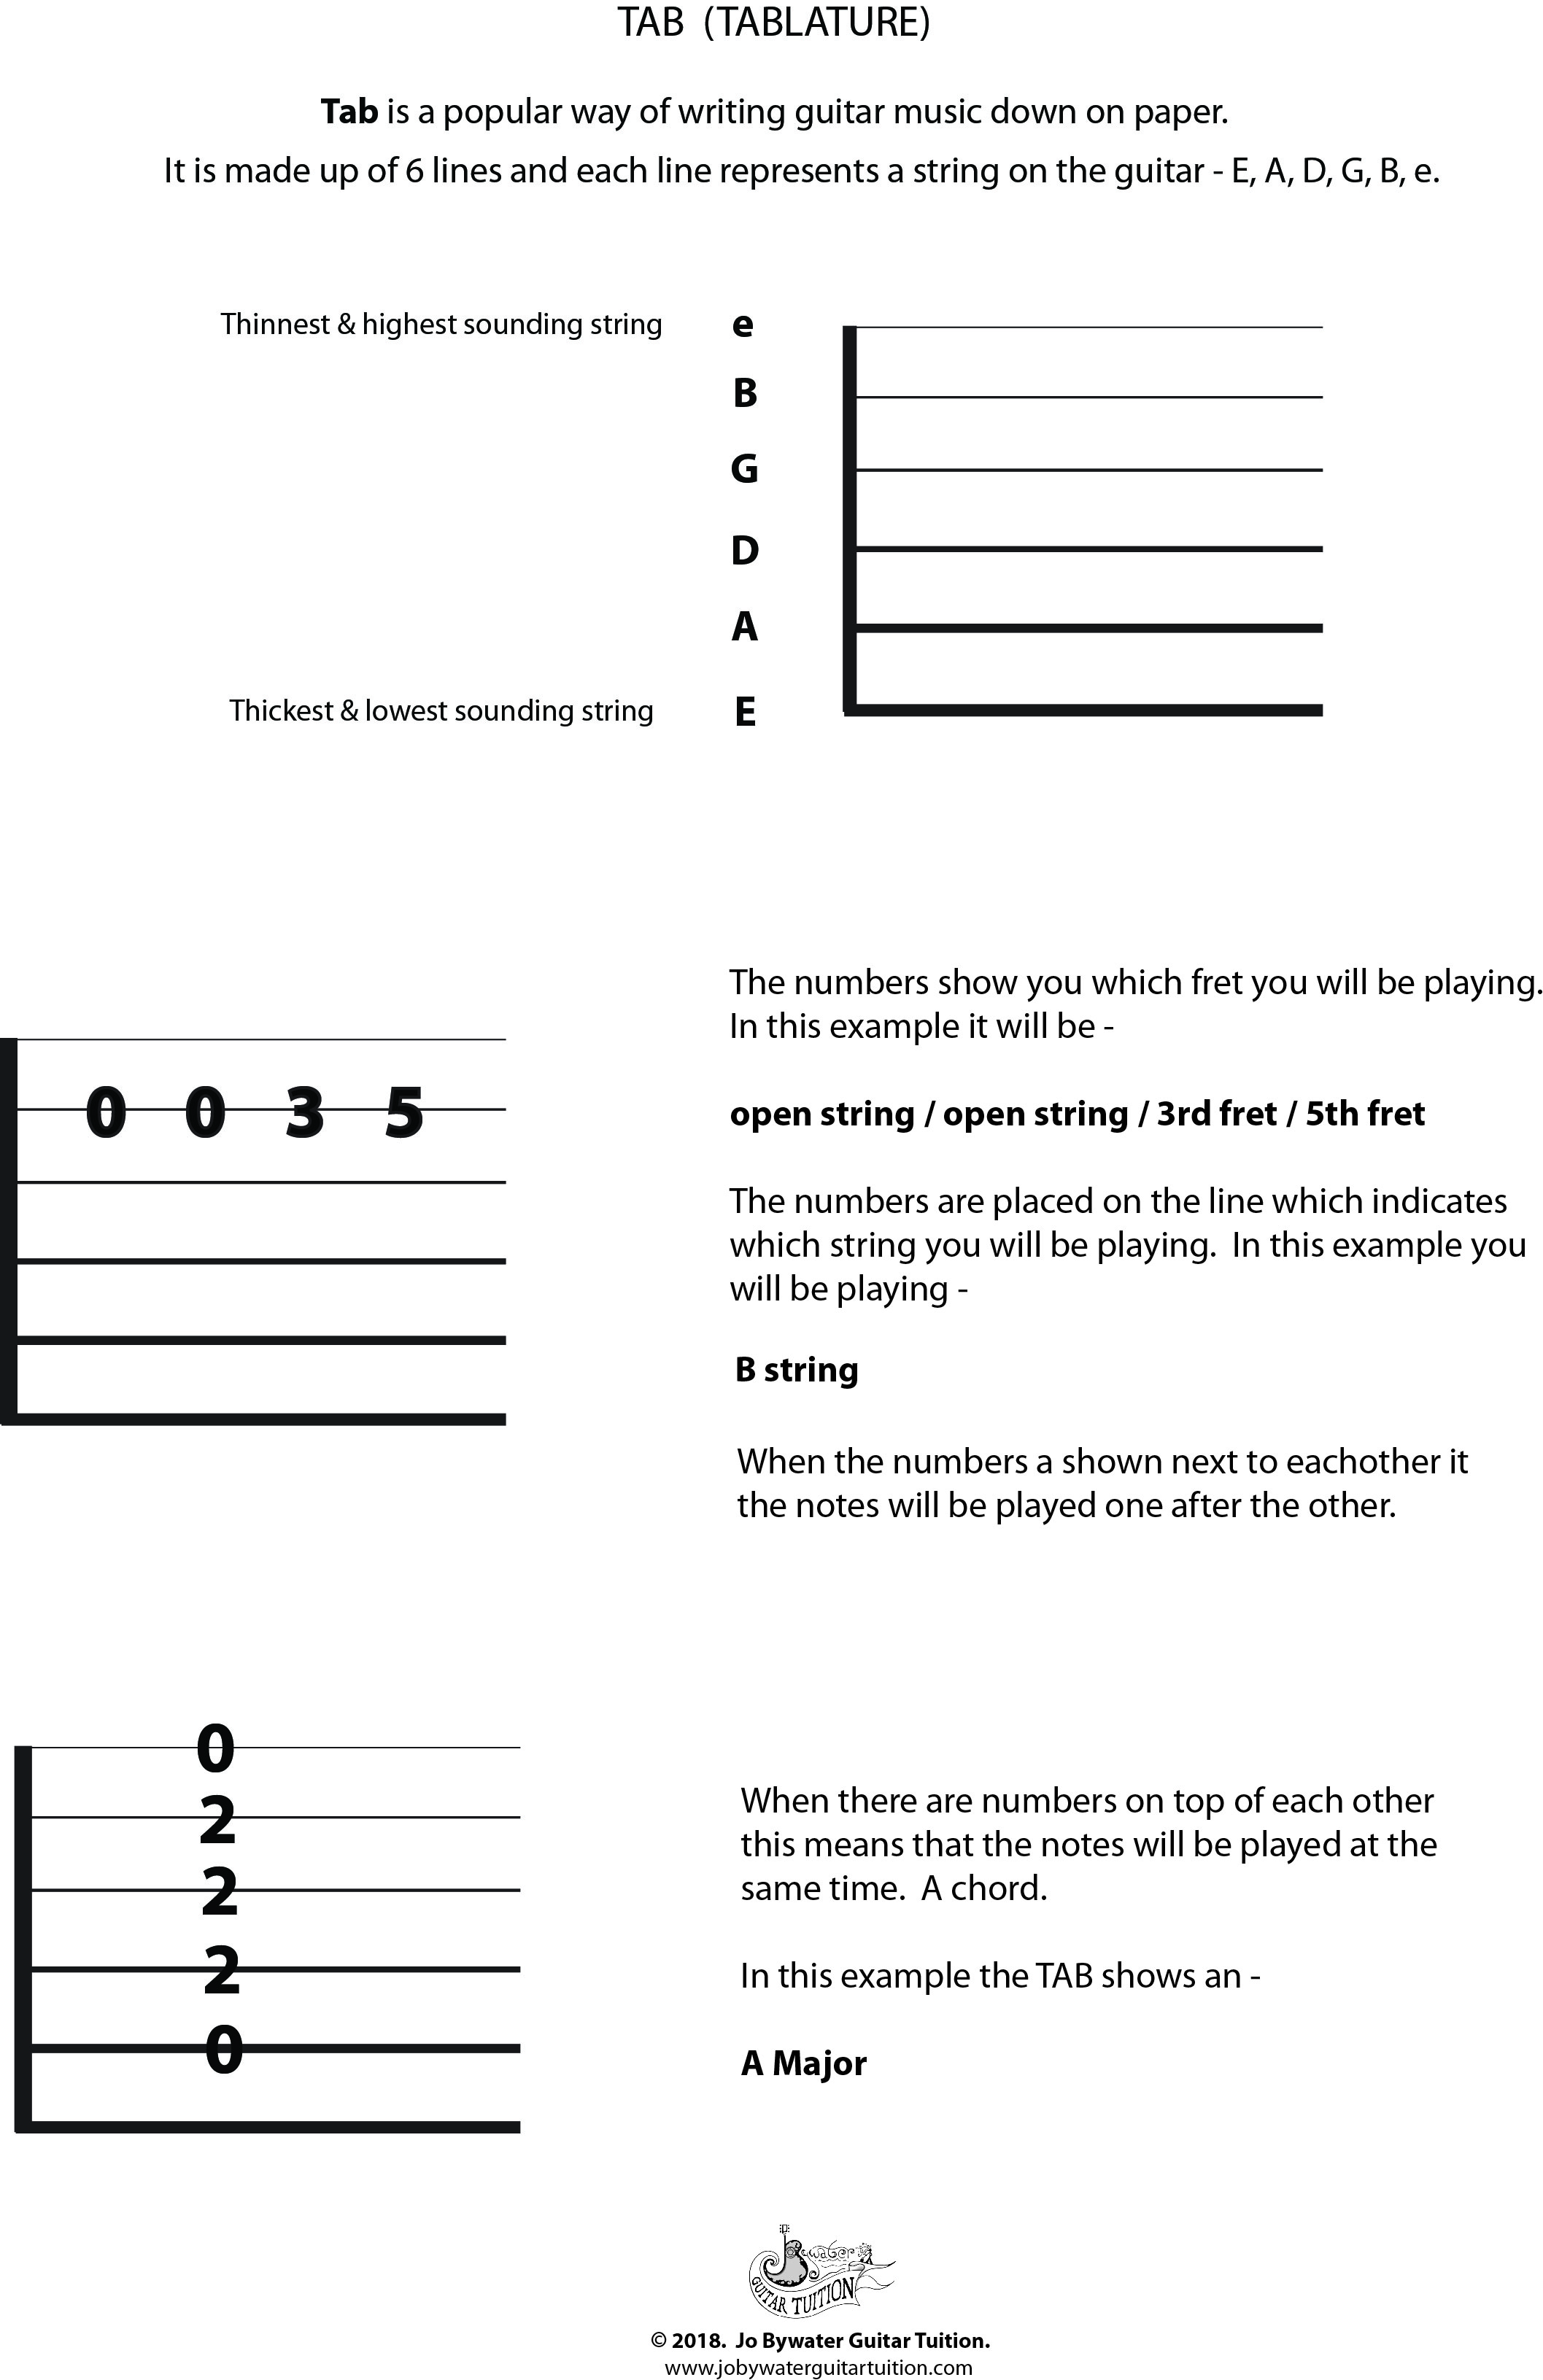 Guitar Tab explained. Created on Illustrator for used in Guitar Lessons Liverpool. Jo Bywater Guitar Tuition.